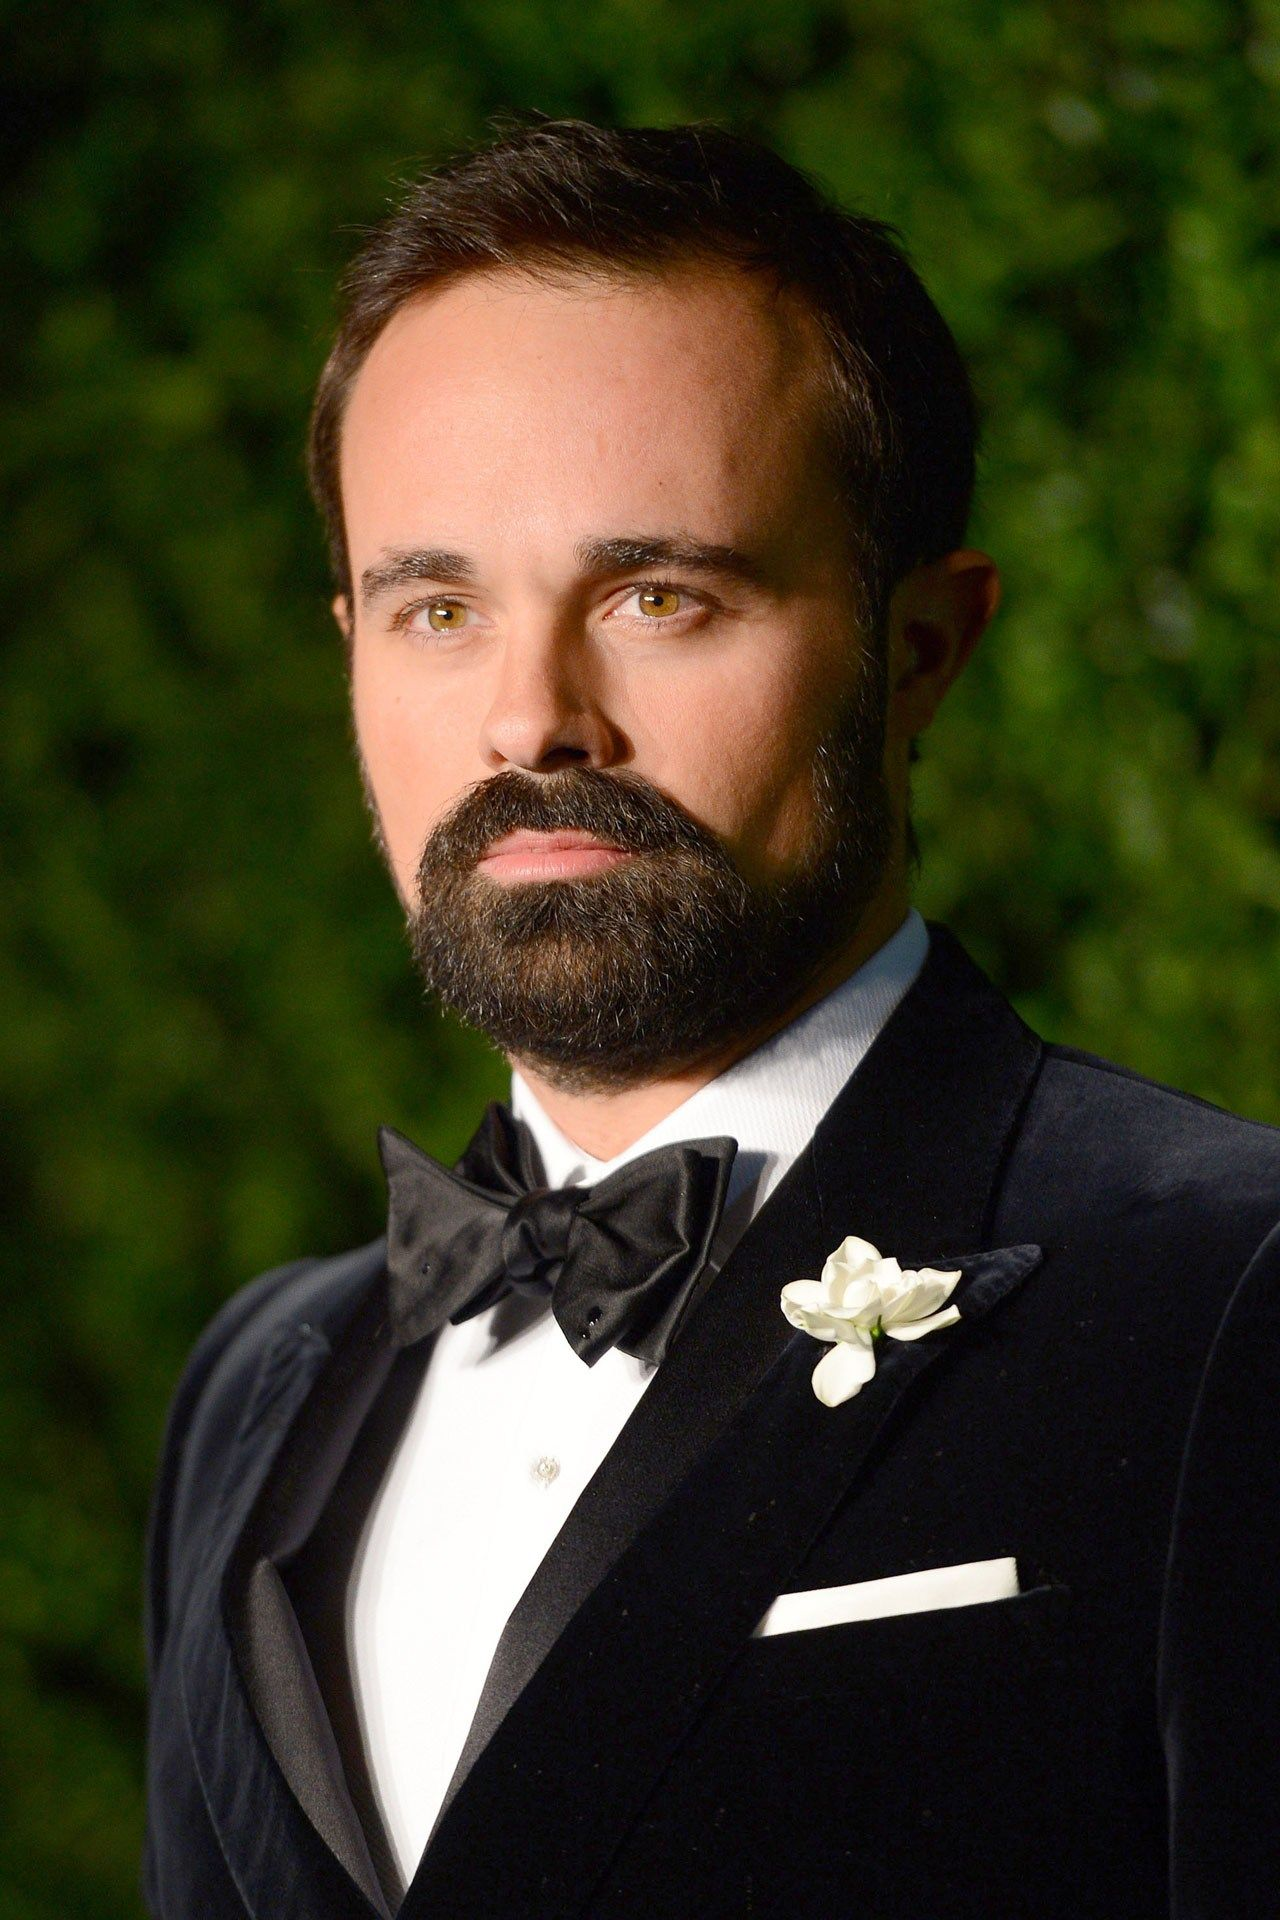 evgeny lebedev - photo #23